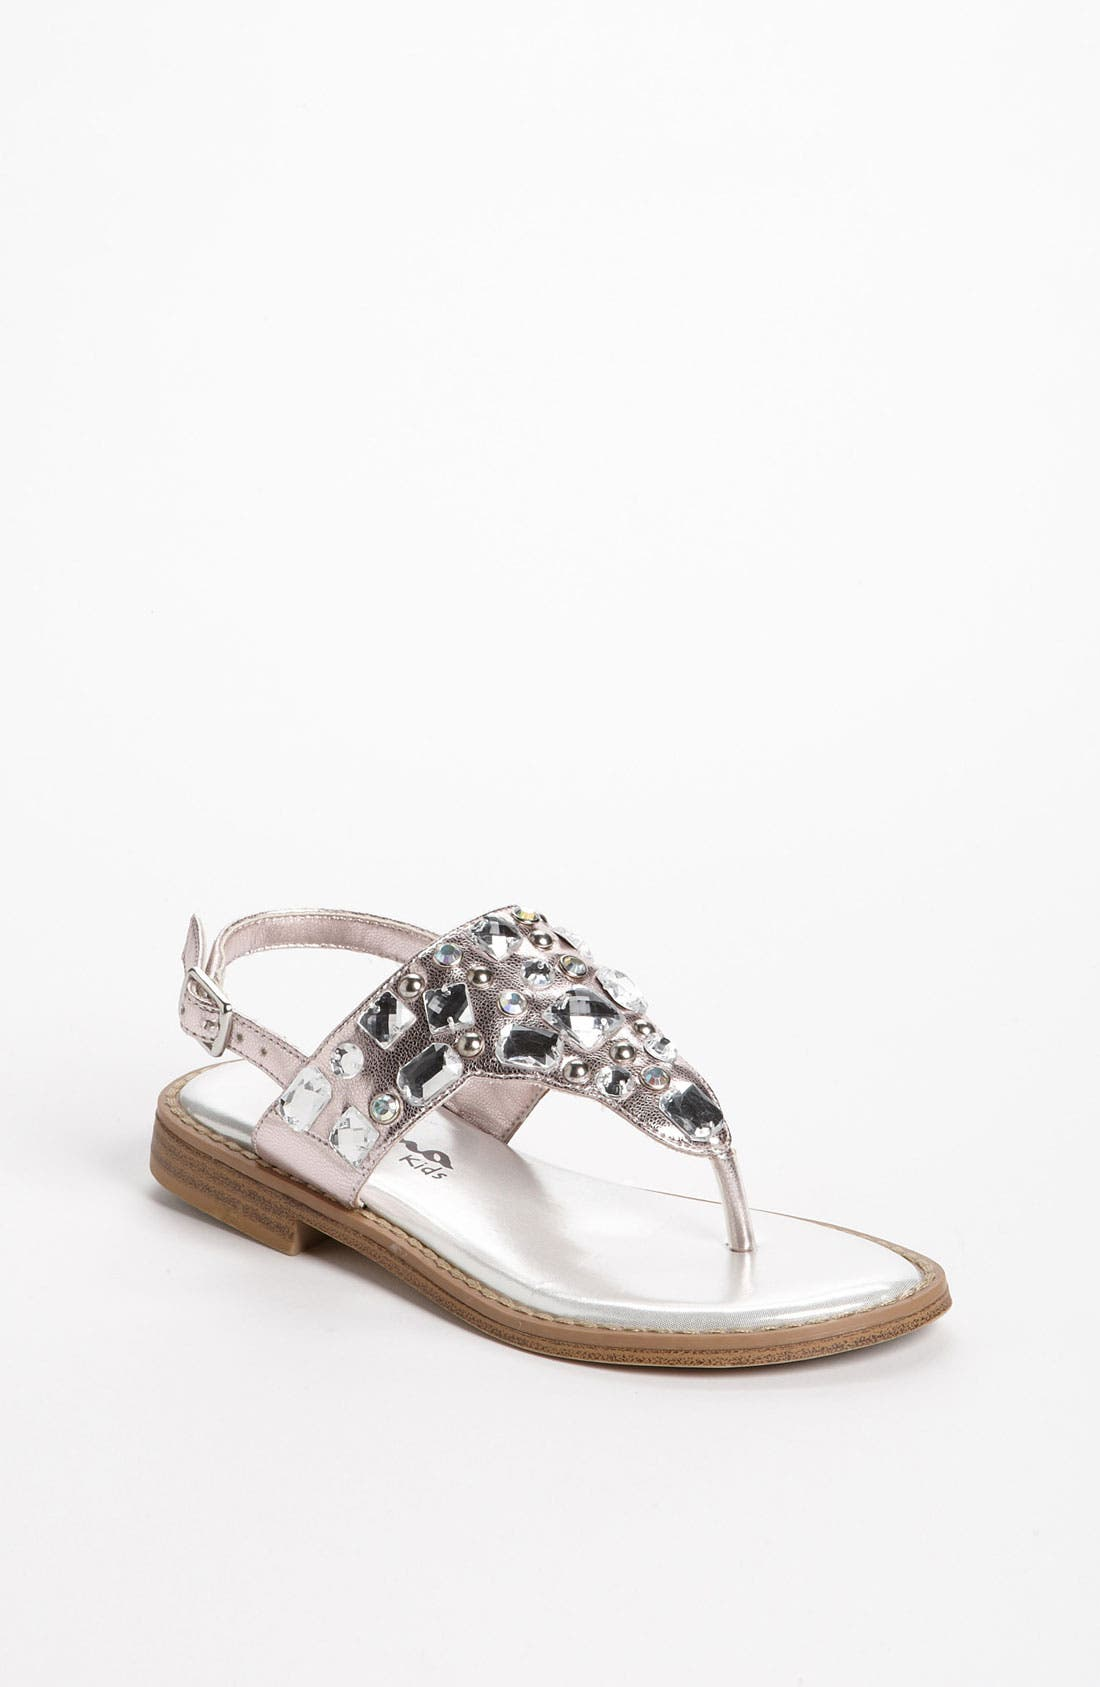 Alternate Image 1 Selected - Nina 'Jewel' Sandal (Walker, Toddler, Little Kid & Big Kid)